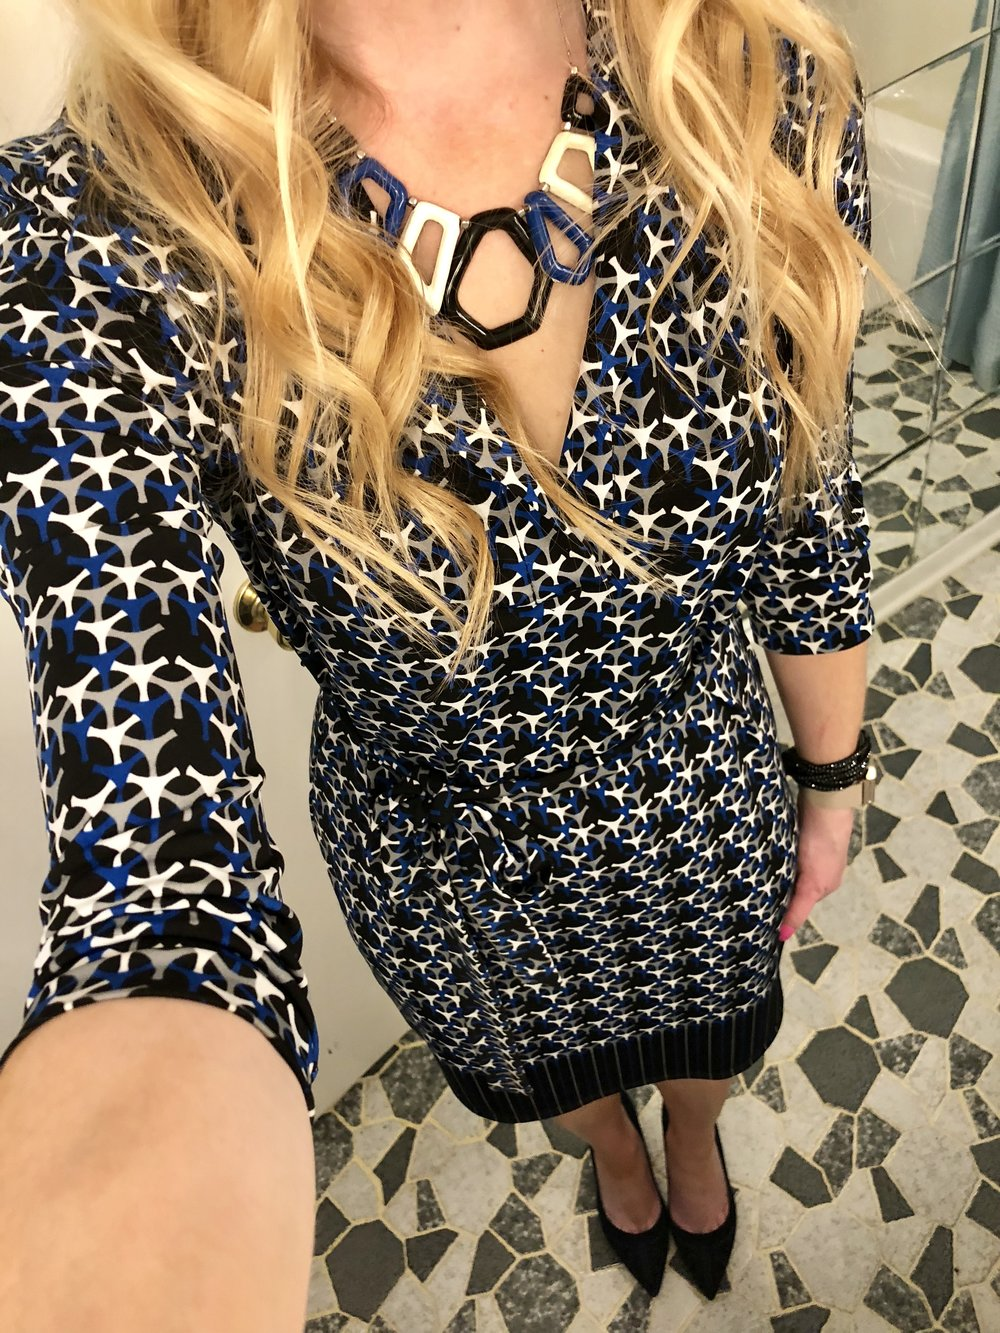 Loving this wrap dress from Nordstrom Rack that has been in my closet for several years. I continue to keep it because of its classic silhouette and how confident it makes me feel for work!